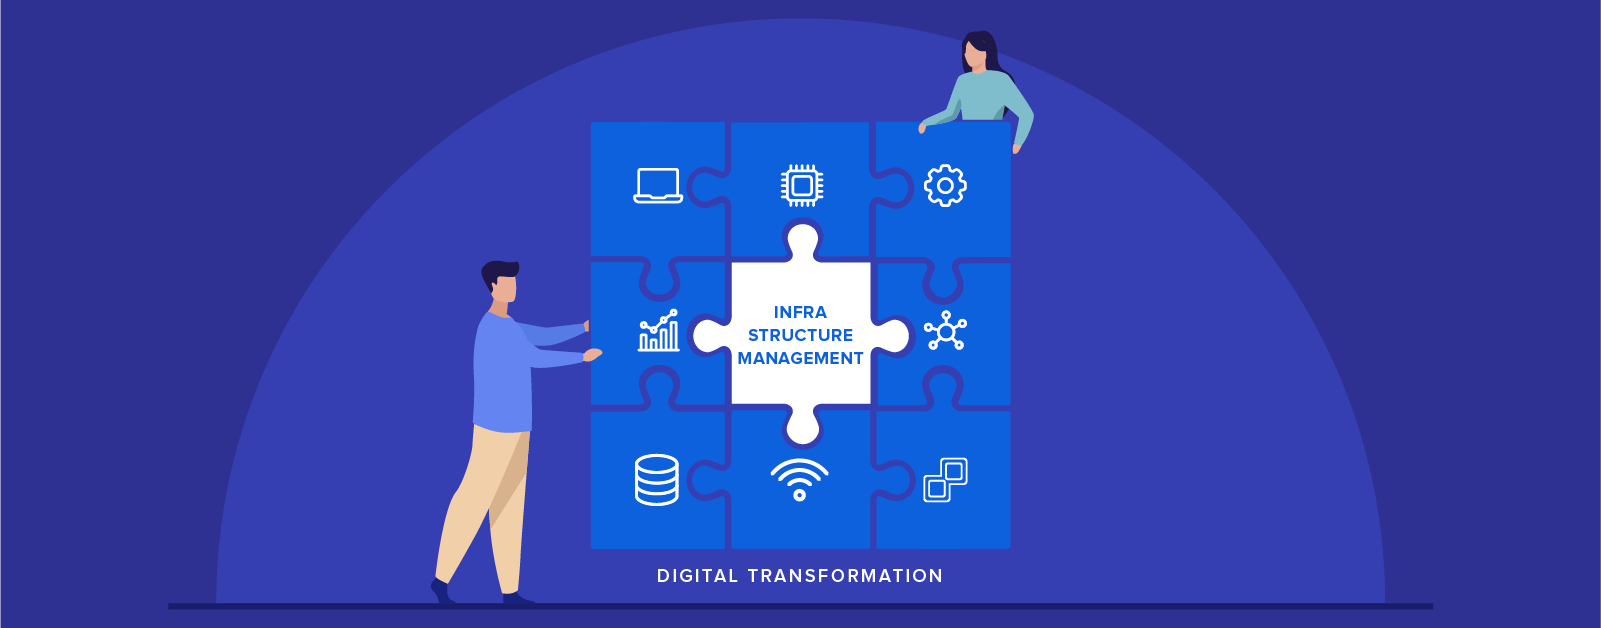 Infrastructure management and digital transformation